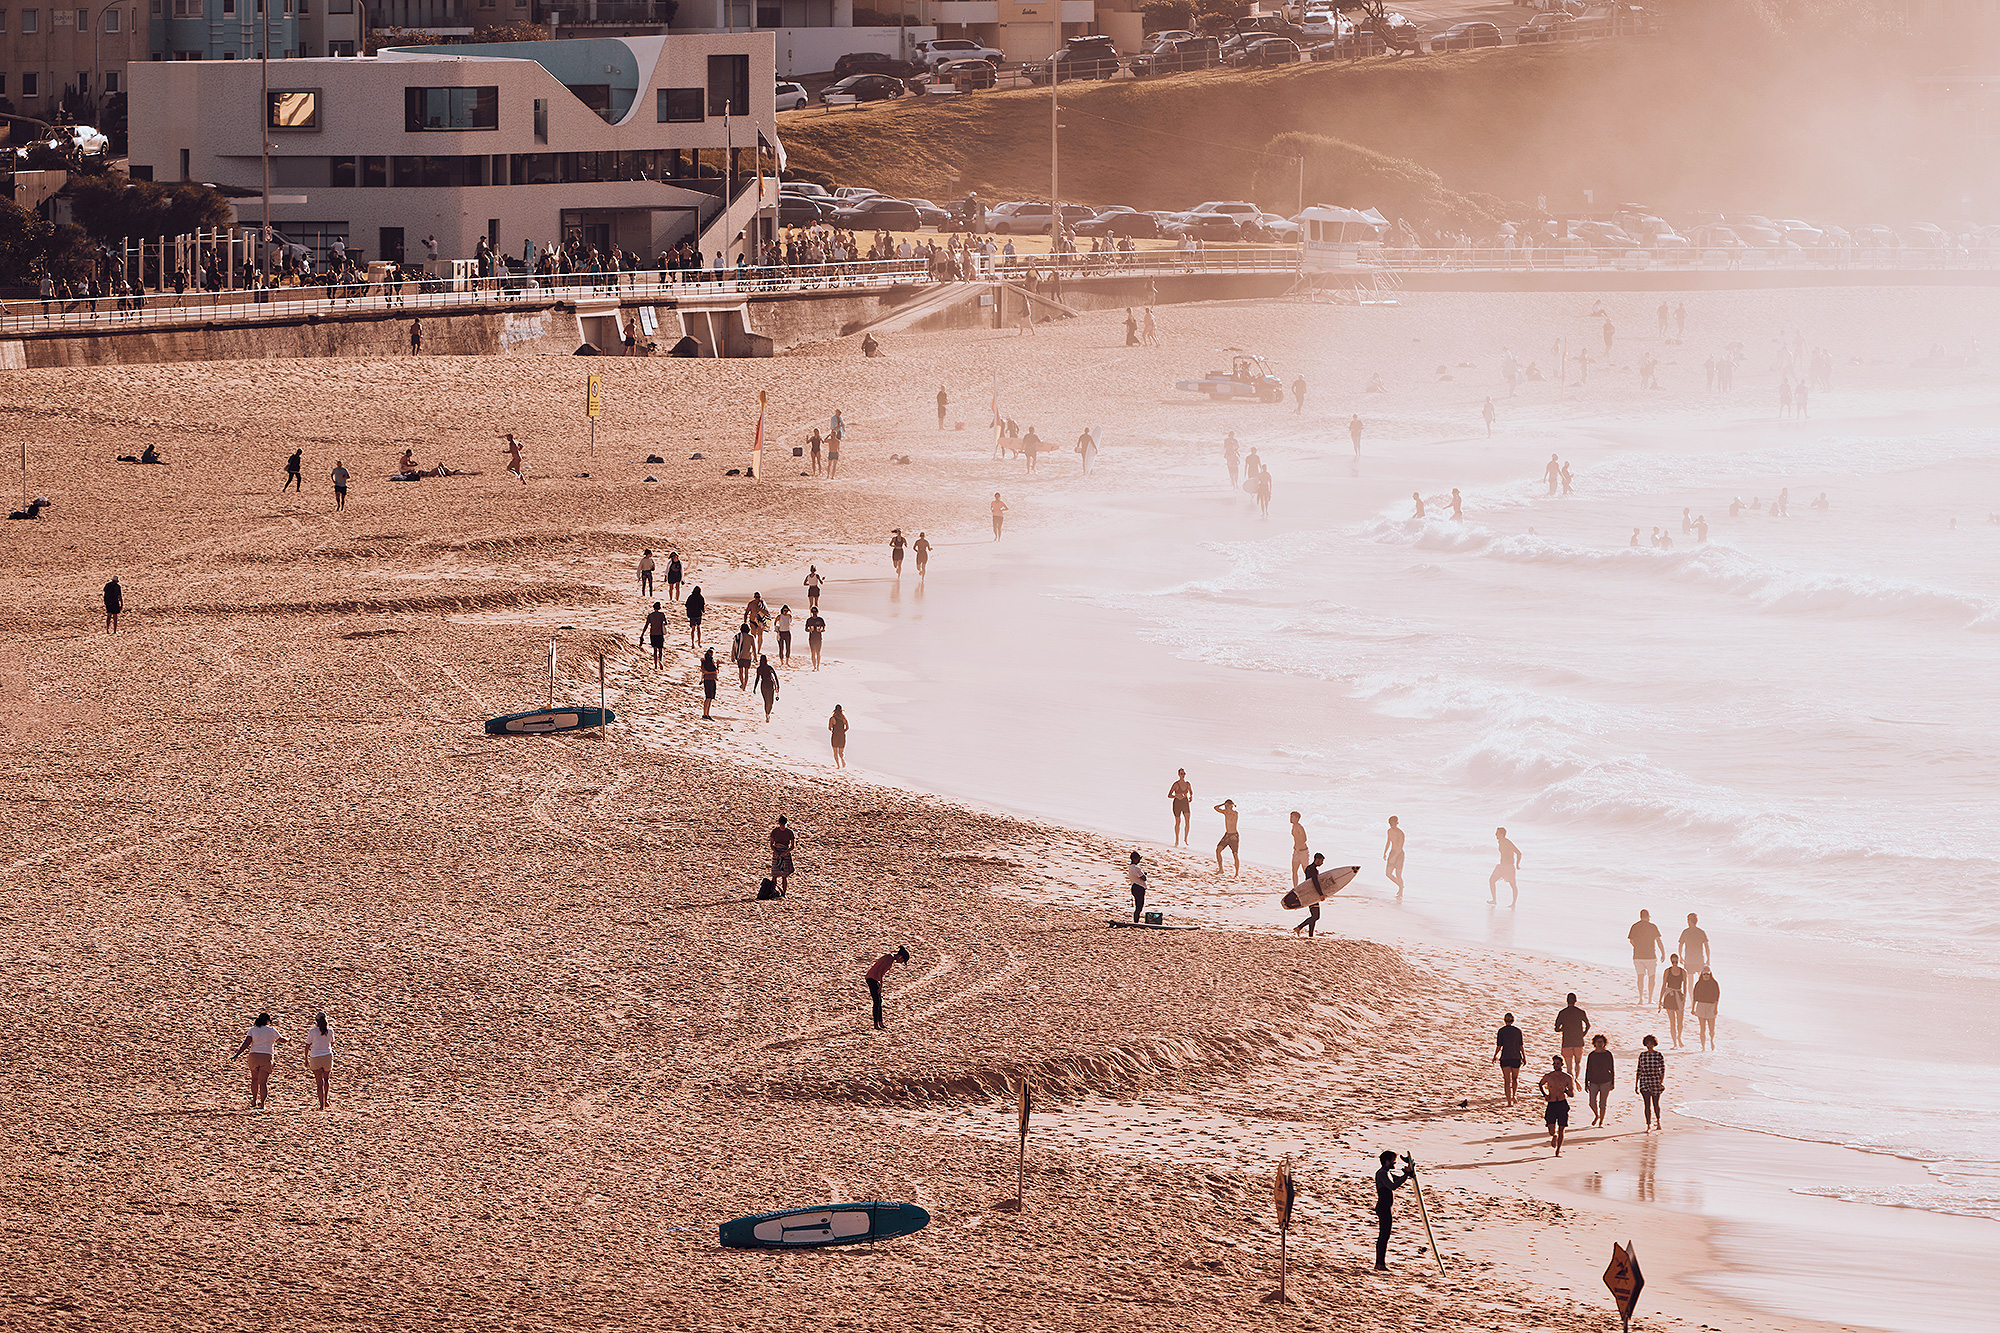 Bondi Beach - 900 metres long and one of the most popular beaches in Australia